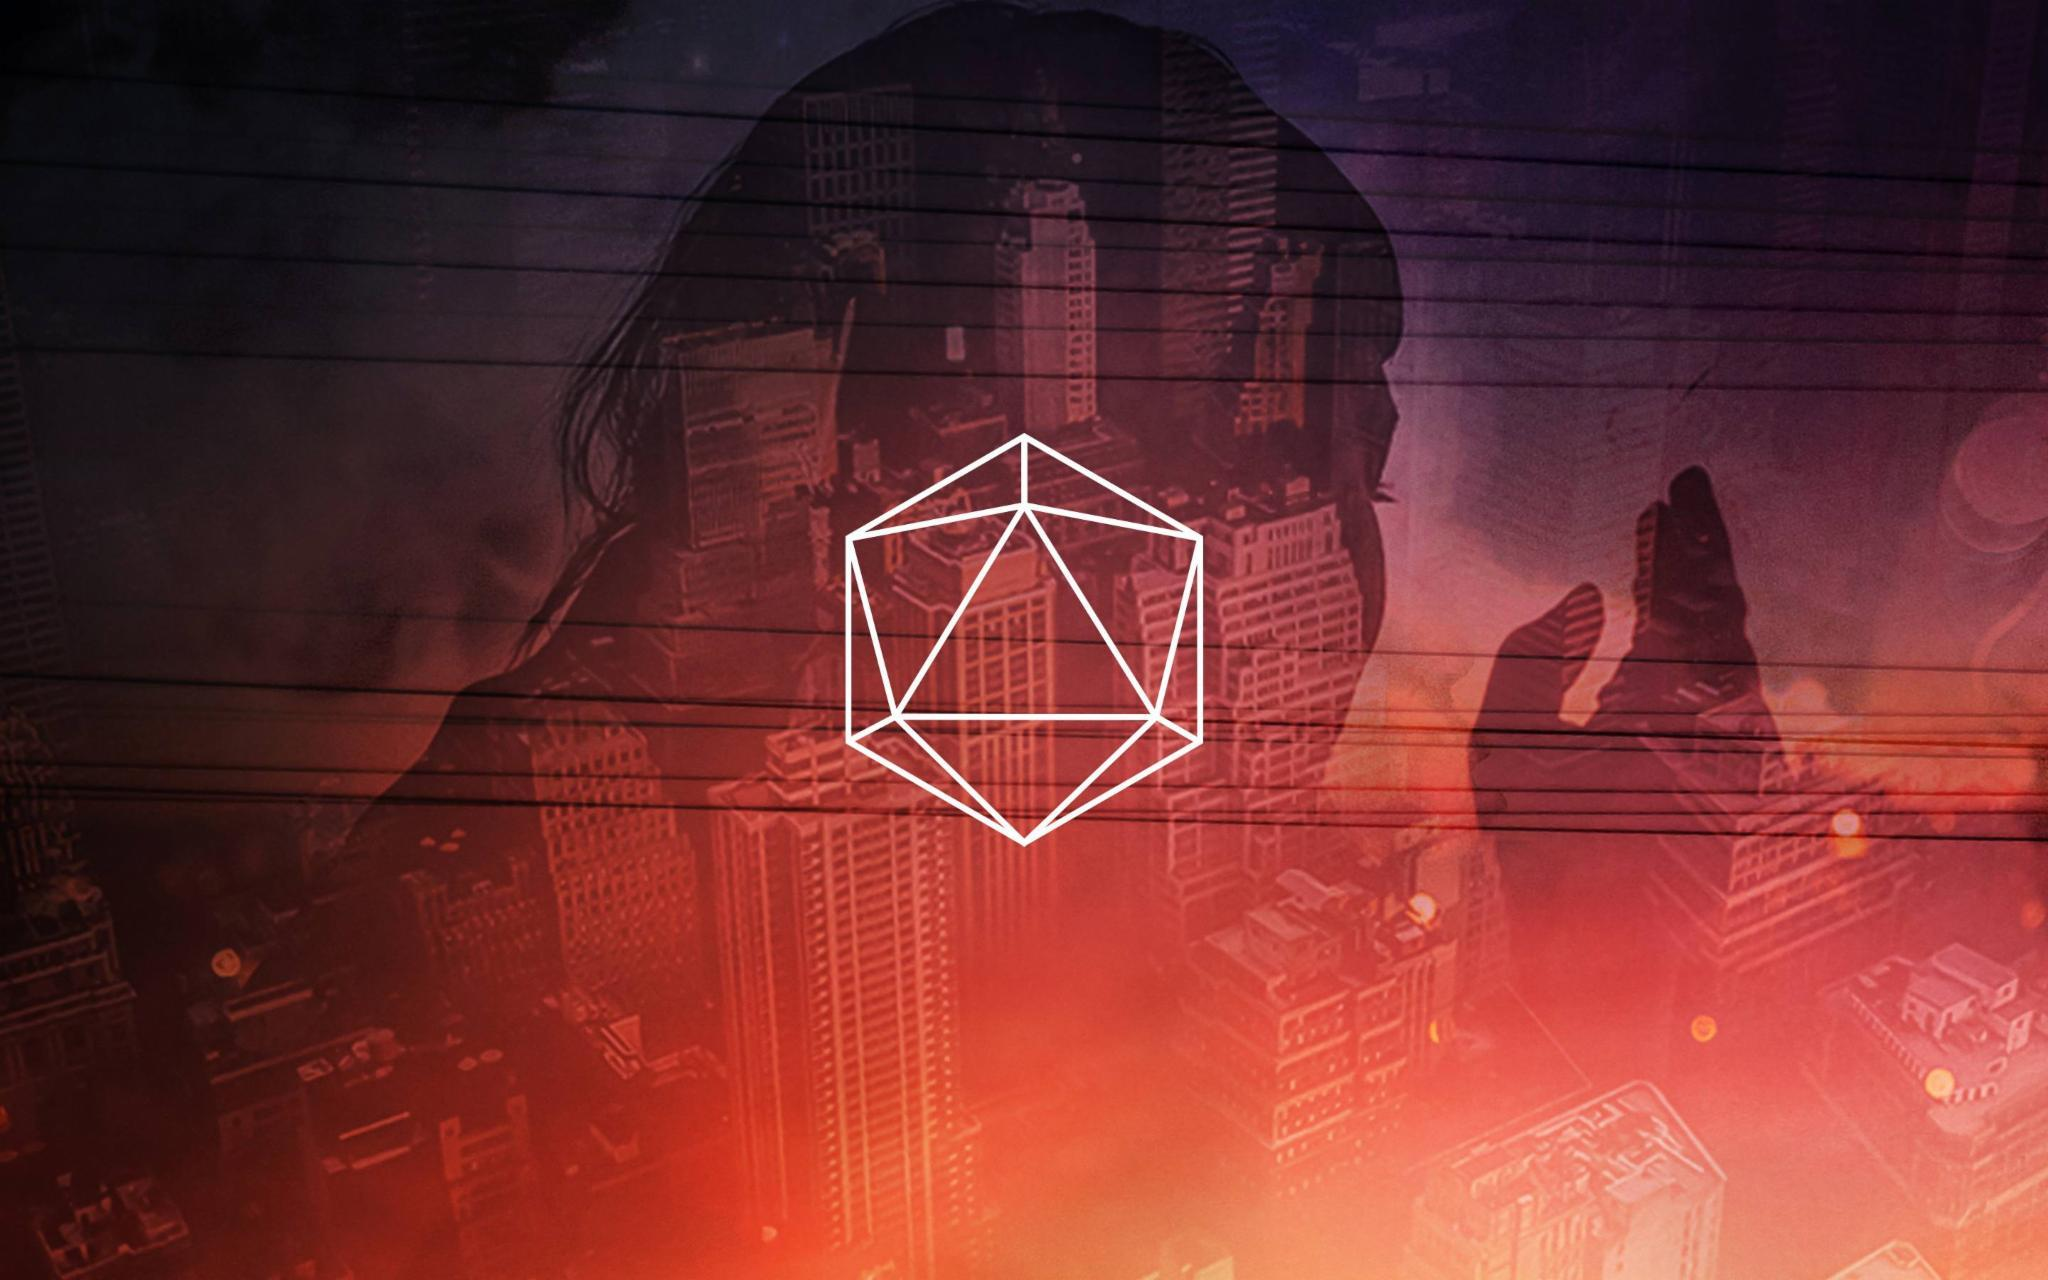 Who did ODESZA collaborate with to make songs such as 'It's Only' and 'Say My Name'?